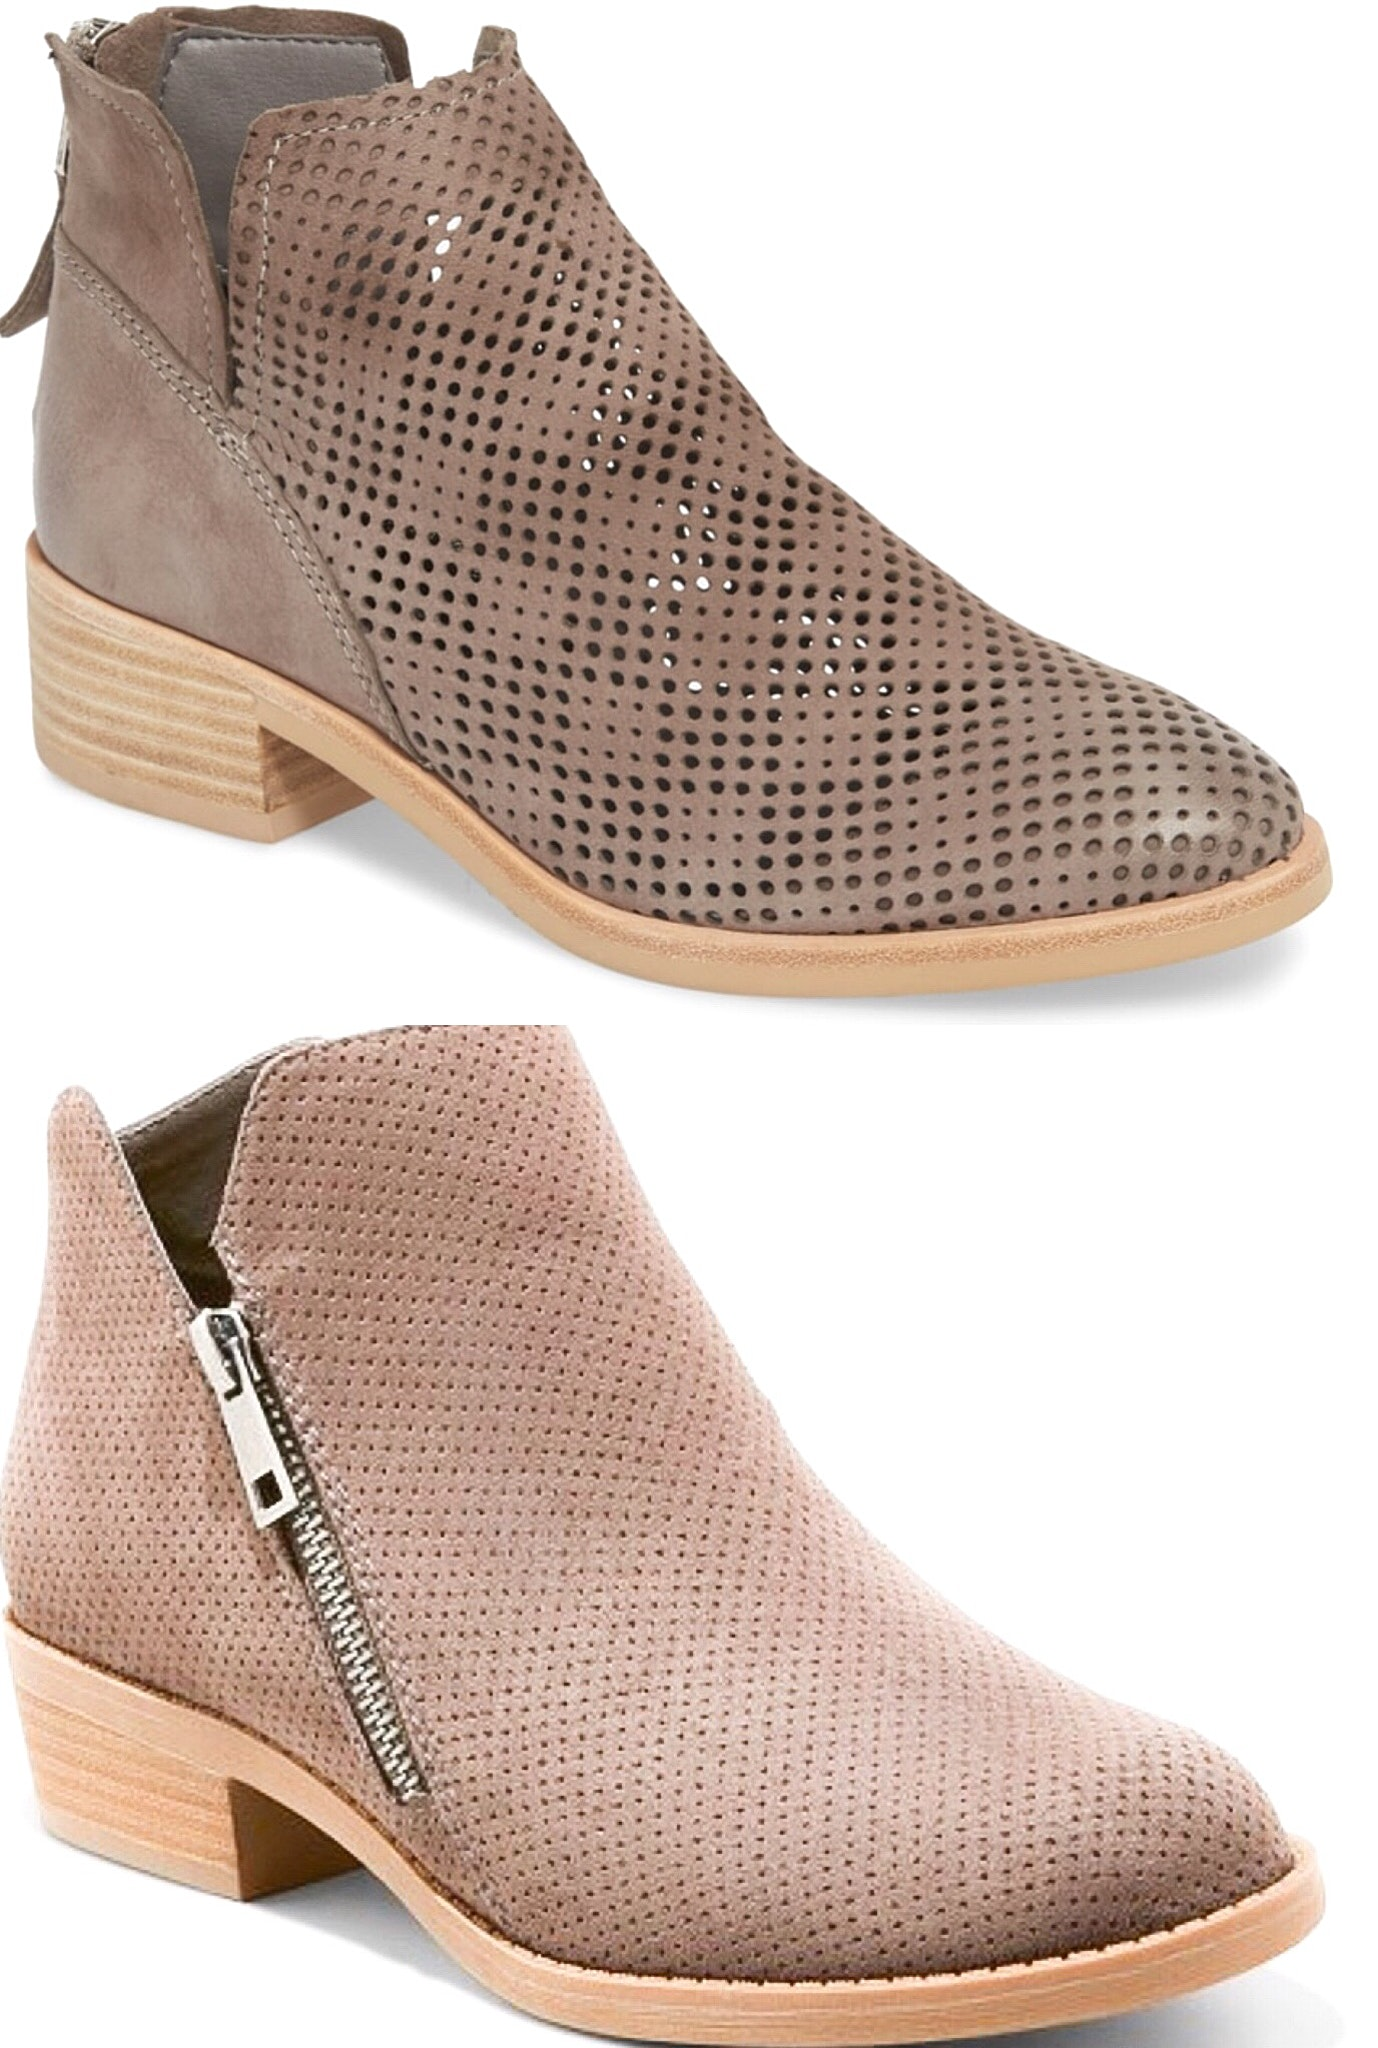 Fall shoes - designer looks for less